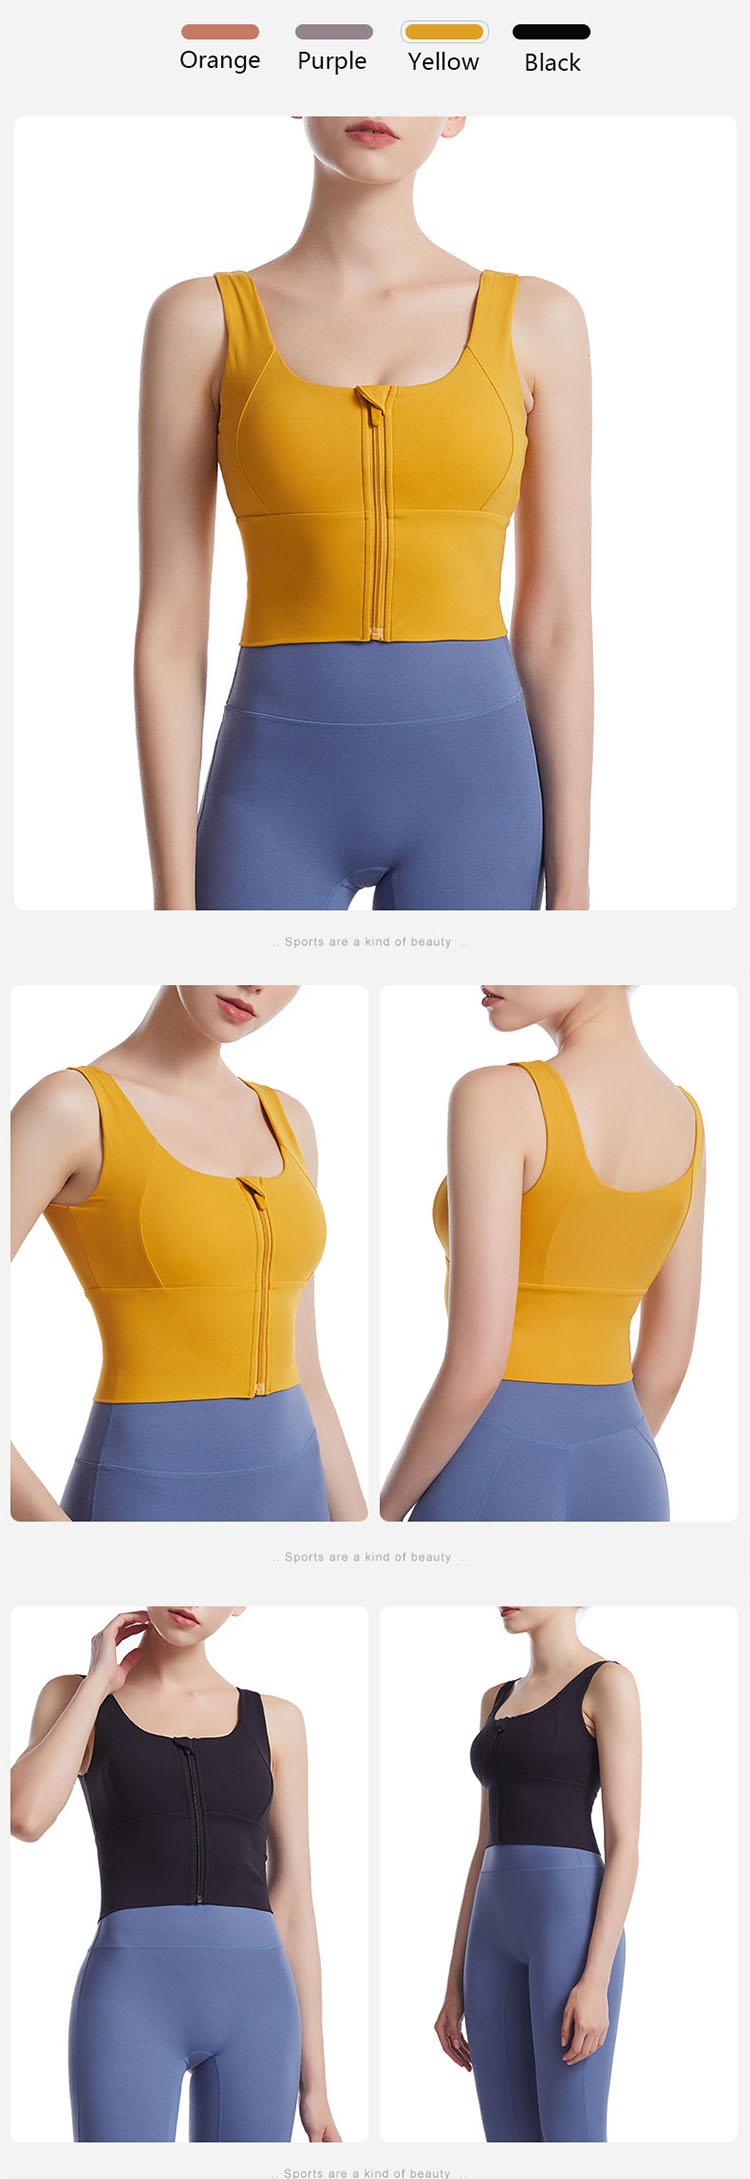 U-shaped neckline design, shaping the body, creating a sexy body.